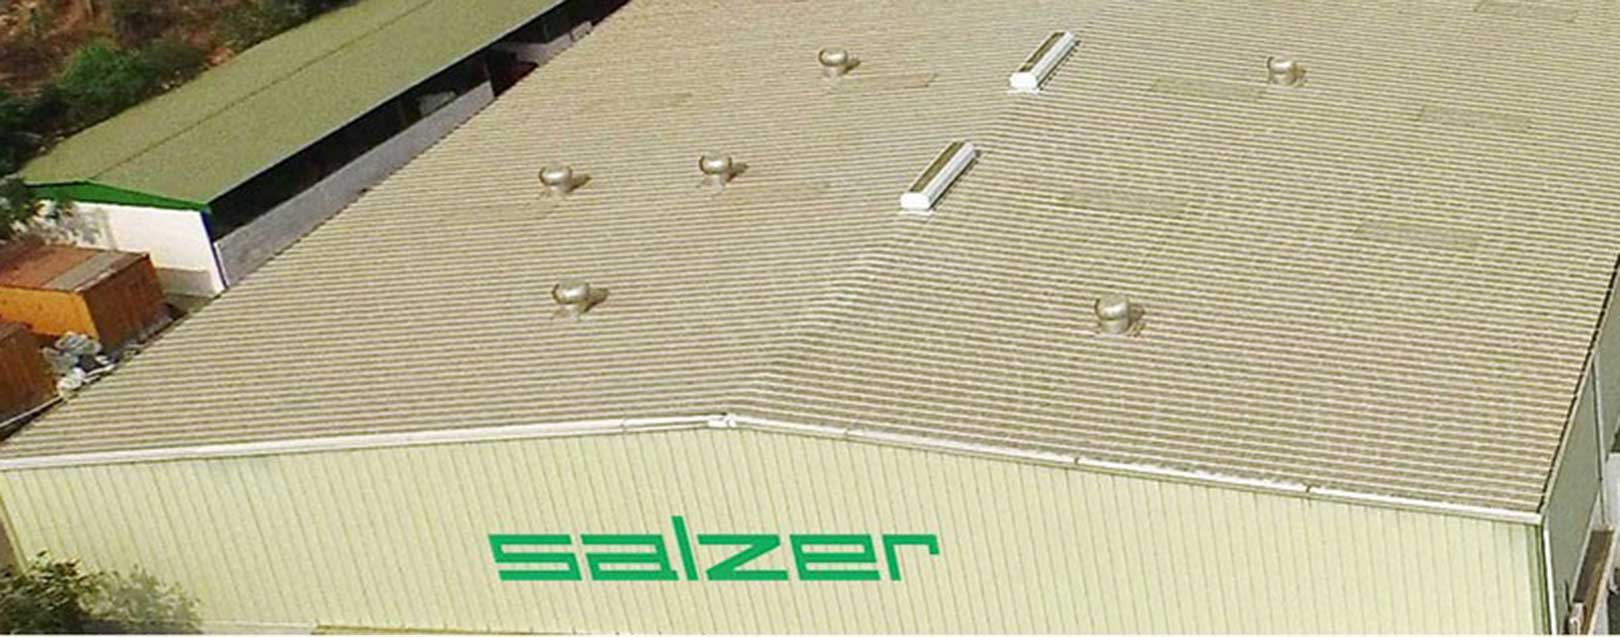 Salzer Electronics eyeing 15% CAGR, Rs.1000 cr revenue by 2021